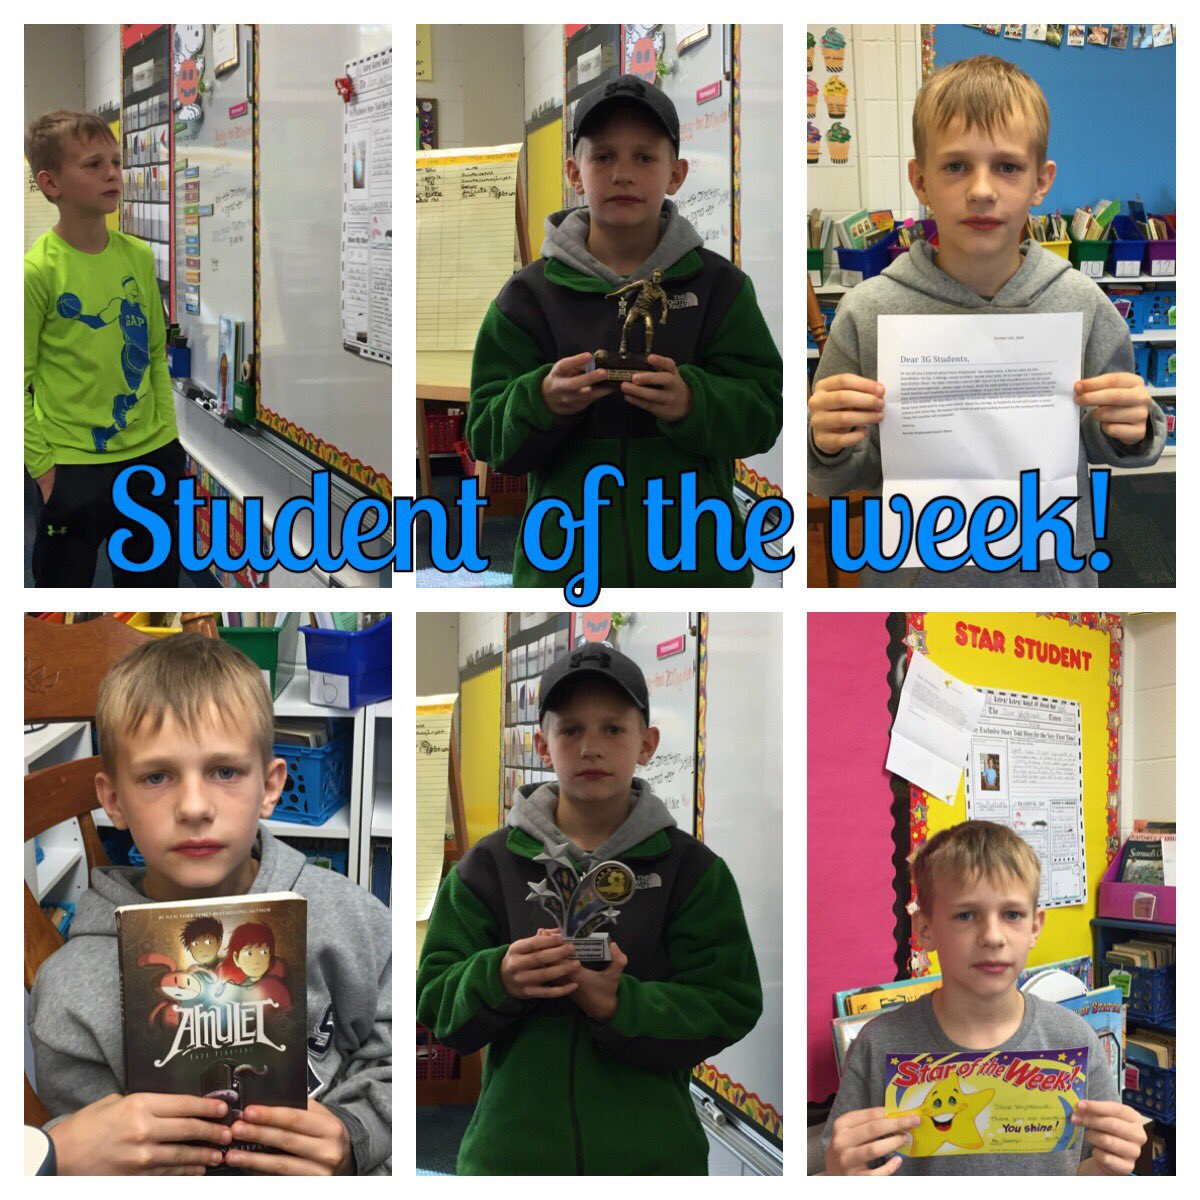 test Twitter Media - Student of the week! #d30learns https://t.co/qPgs3LLsGk